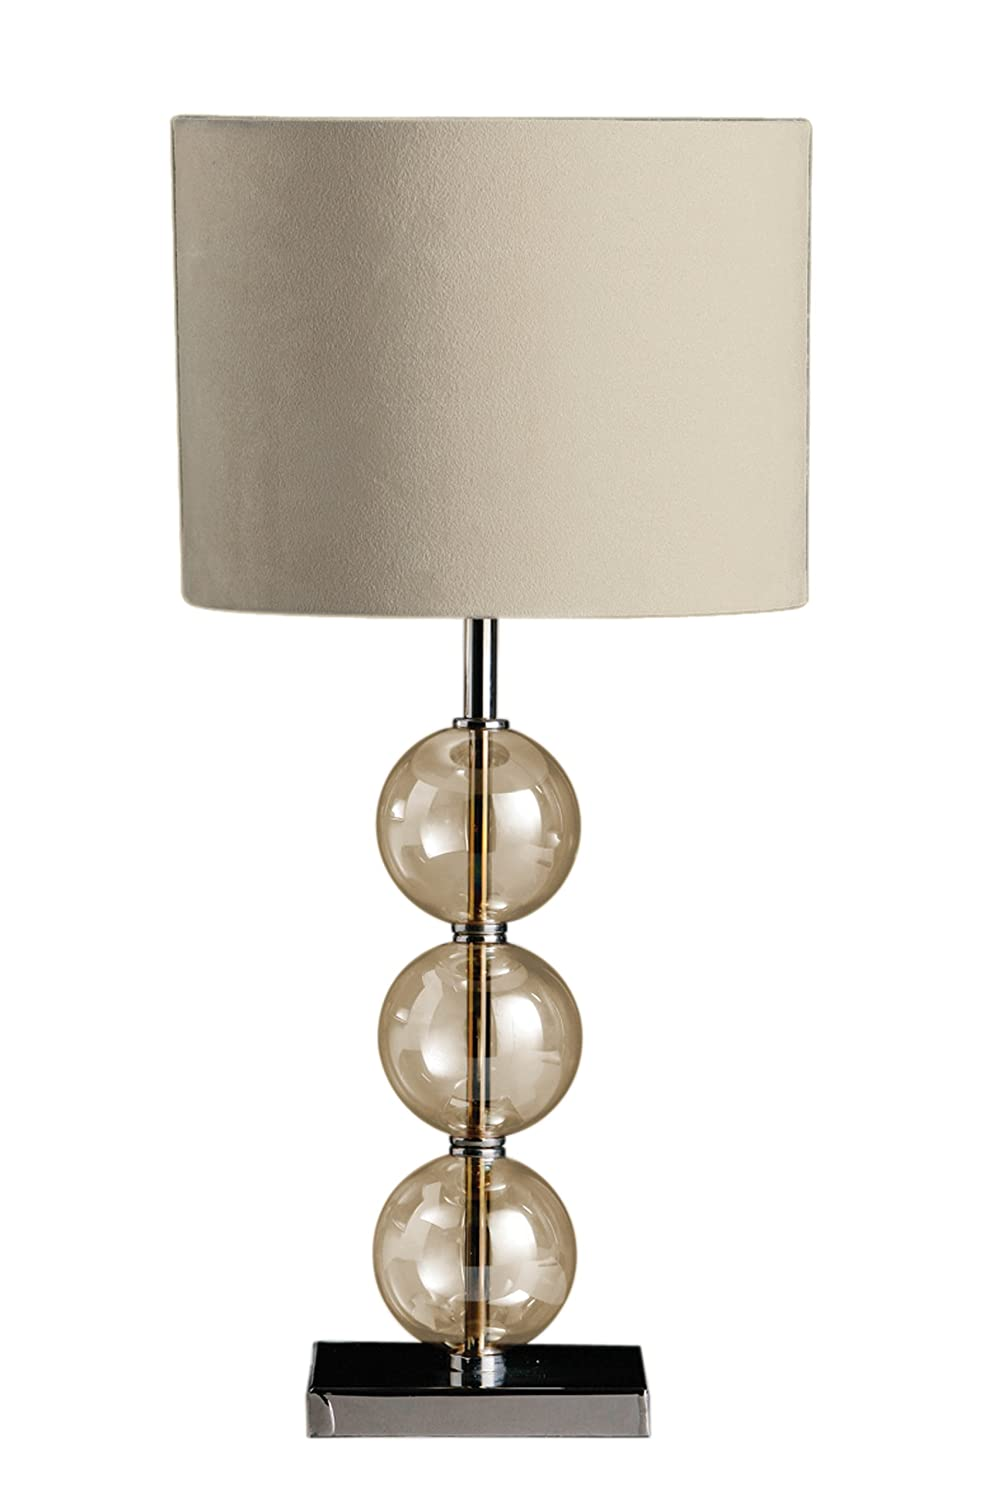 Premier Housewares Mistro Table Lamp With 3 Amber Glass Balls Chrome Base  And Cream Faux Suede Shade: Amazon.co.uk: Lighting